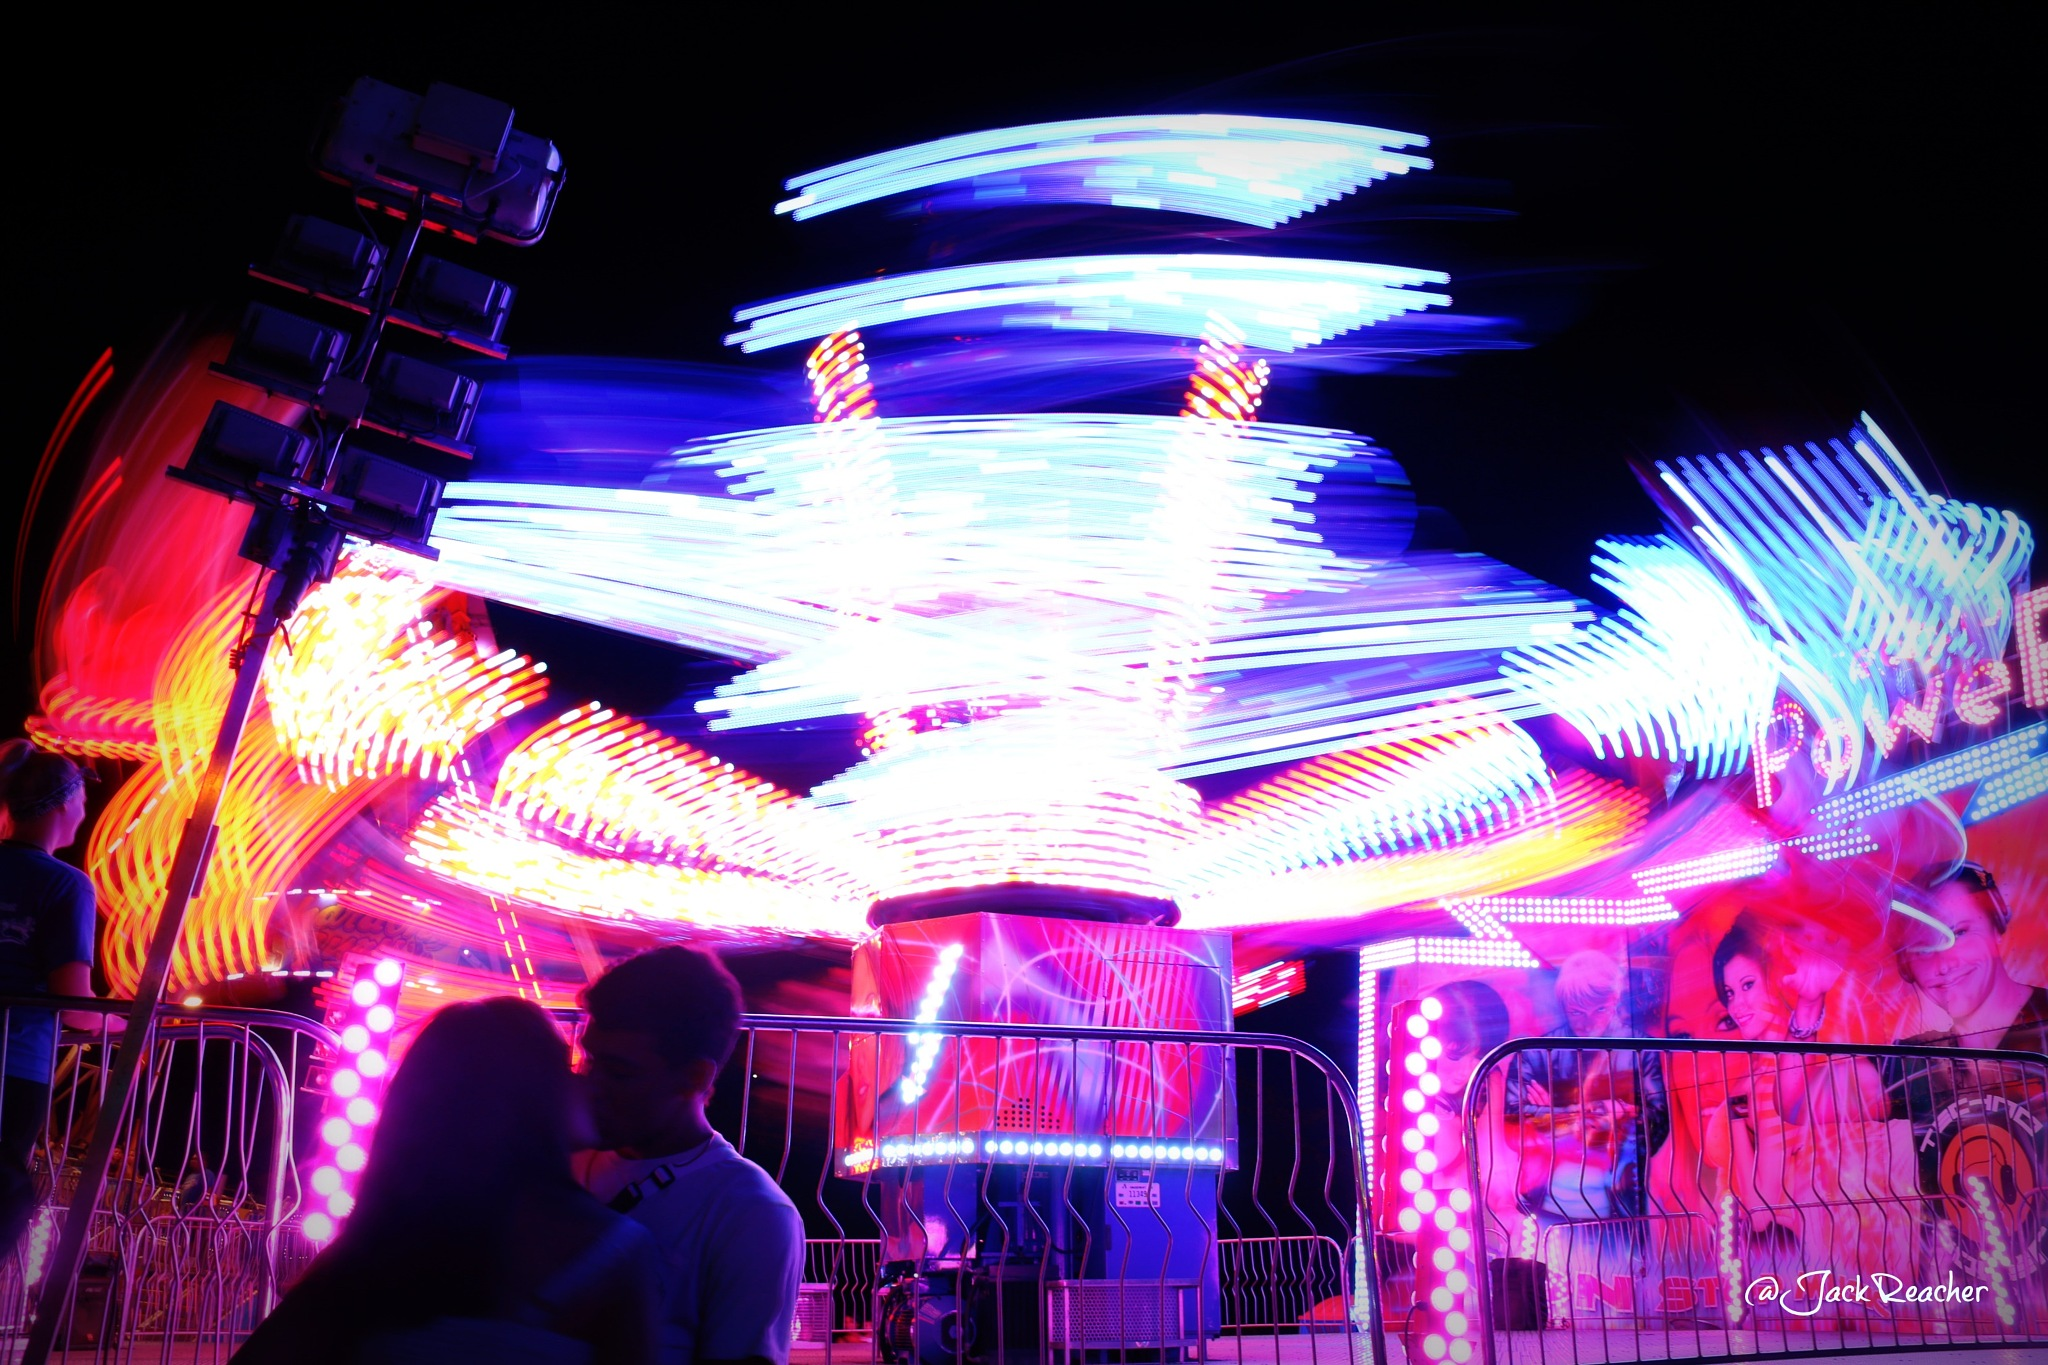 One of many dizzy rides at the 50th state fair by yule.andrada